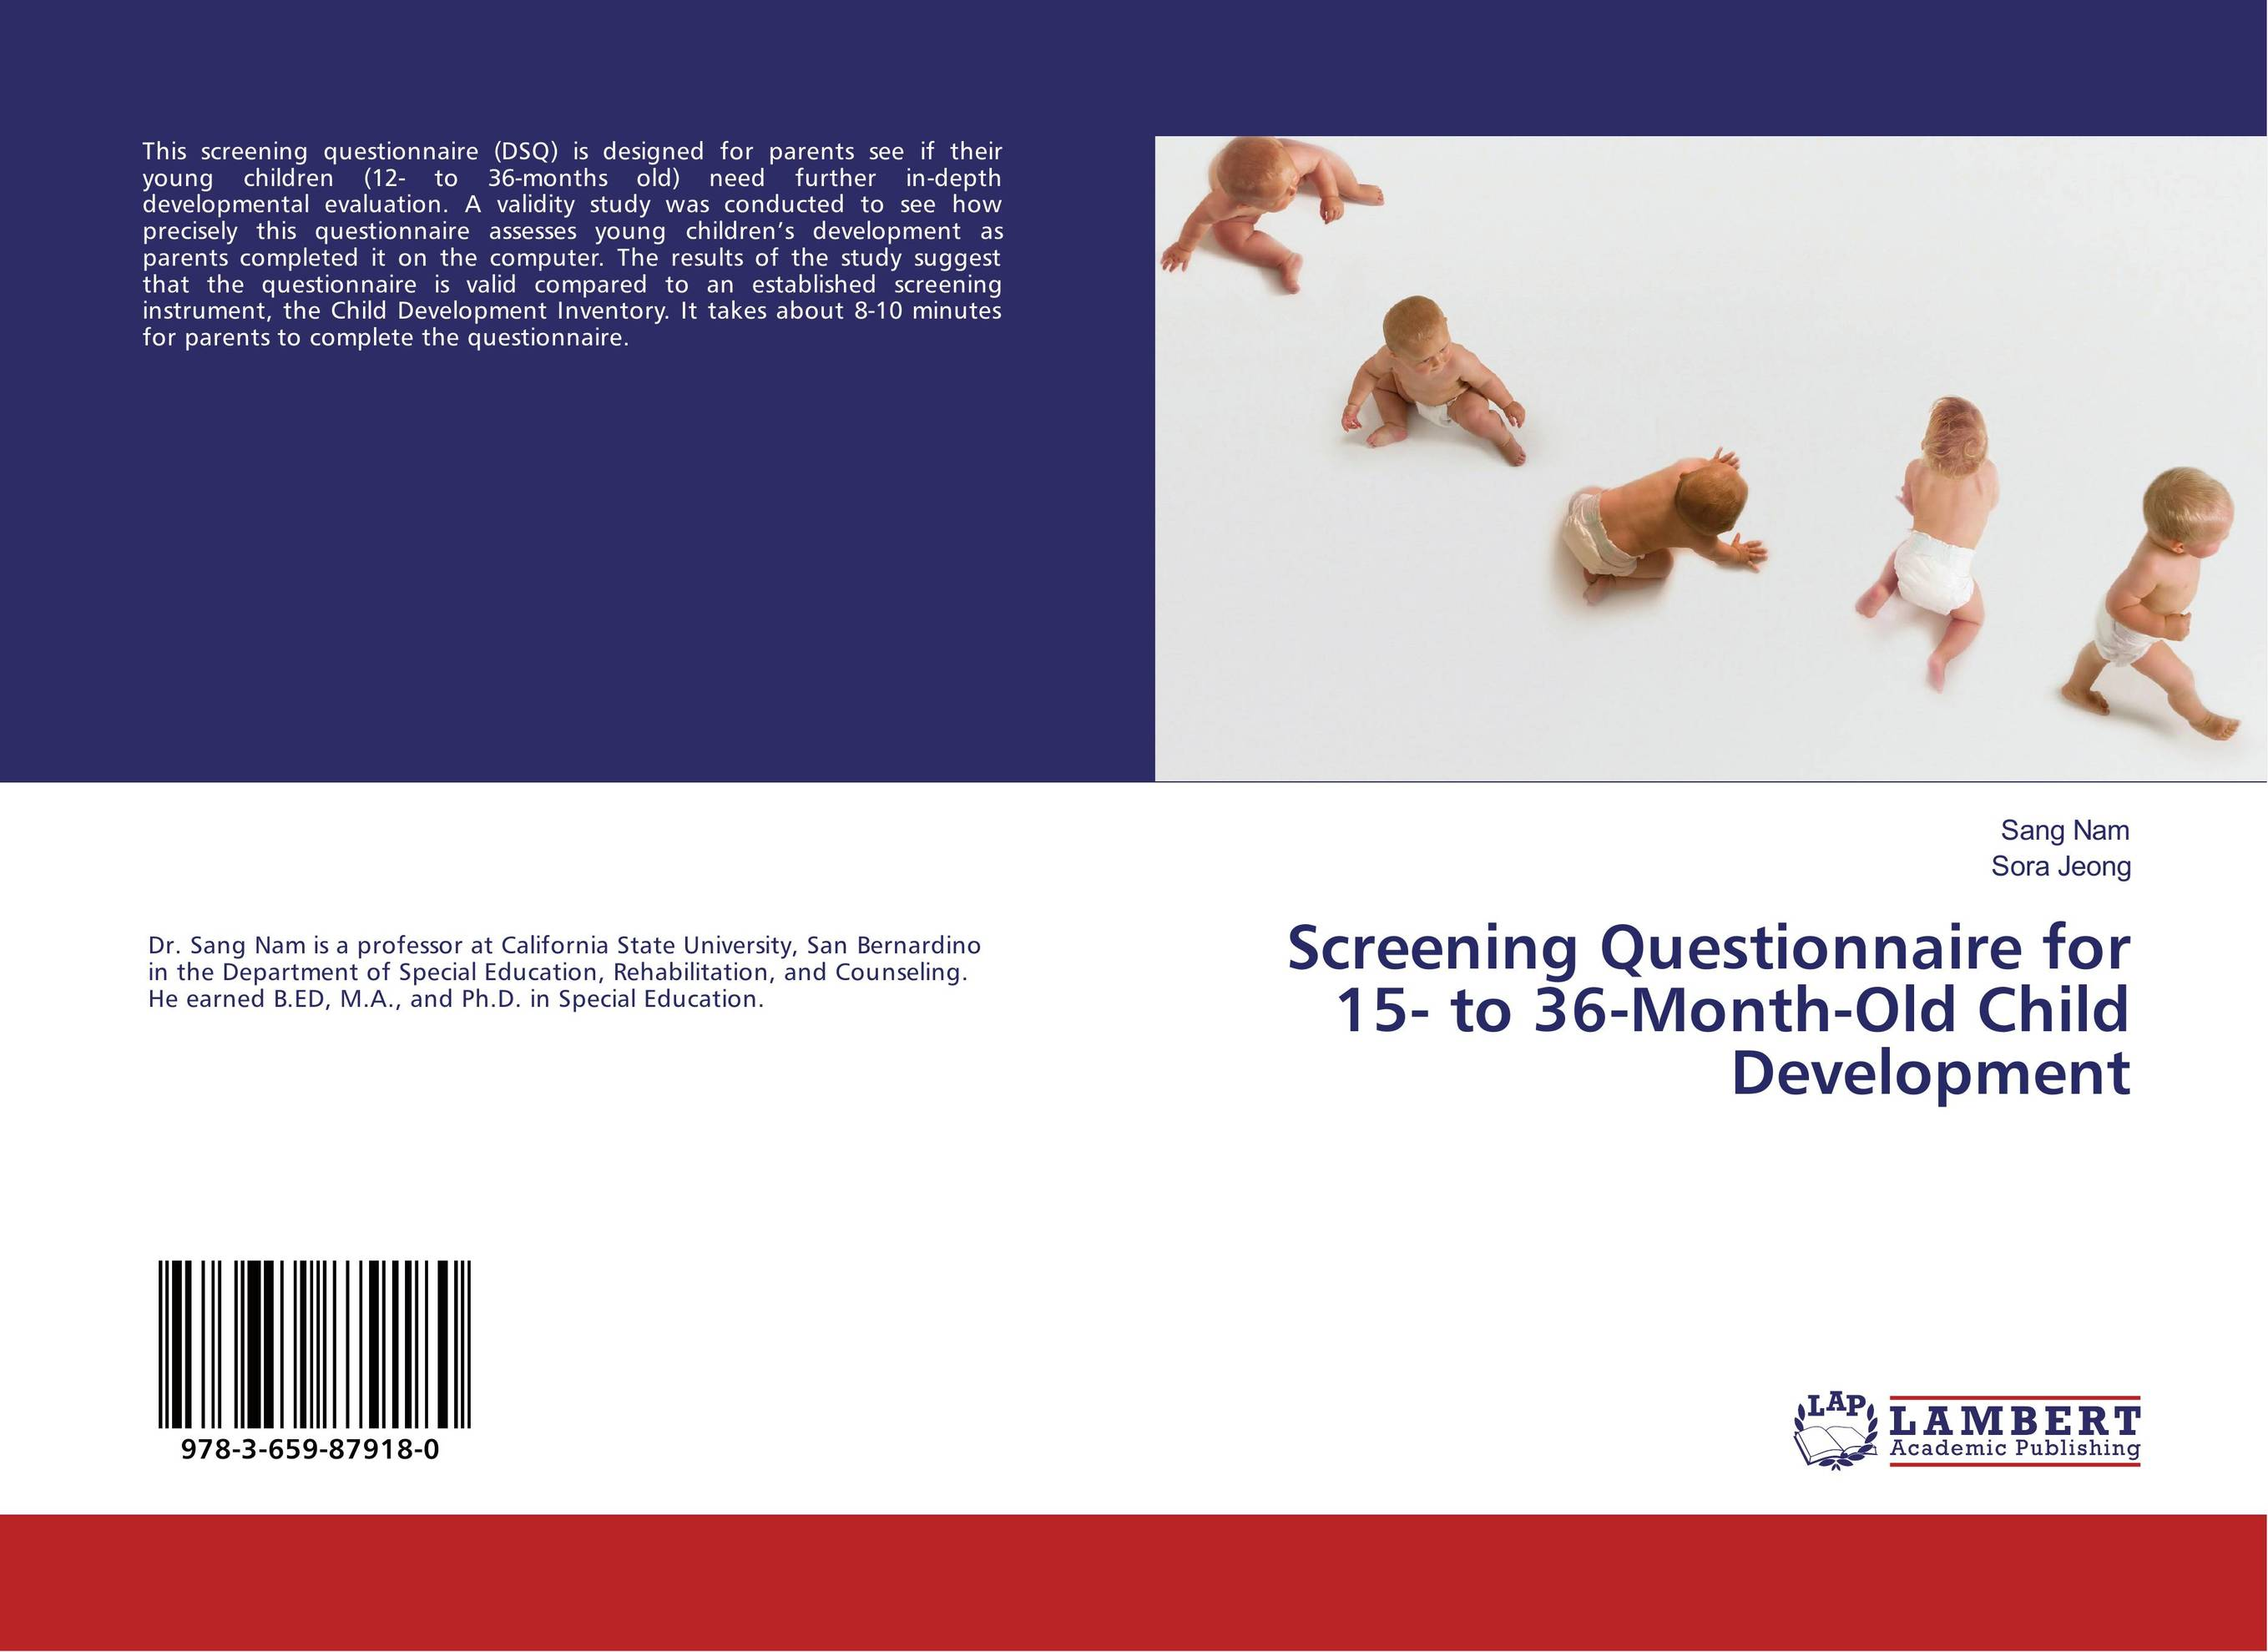 Screening Questionnaire for 15- to 36-Month-Old Child Development antenatal screening for postpartum depression